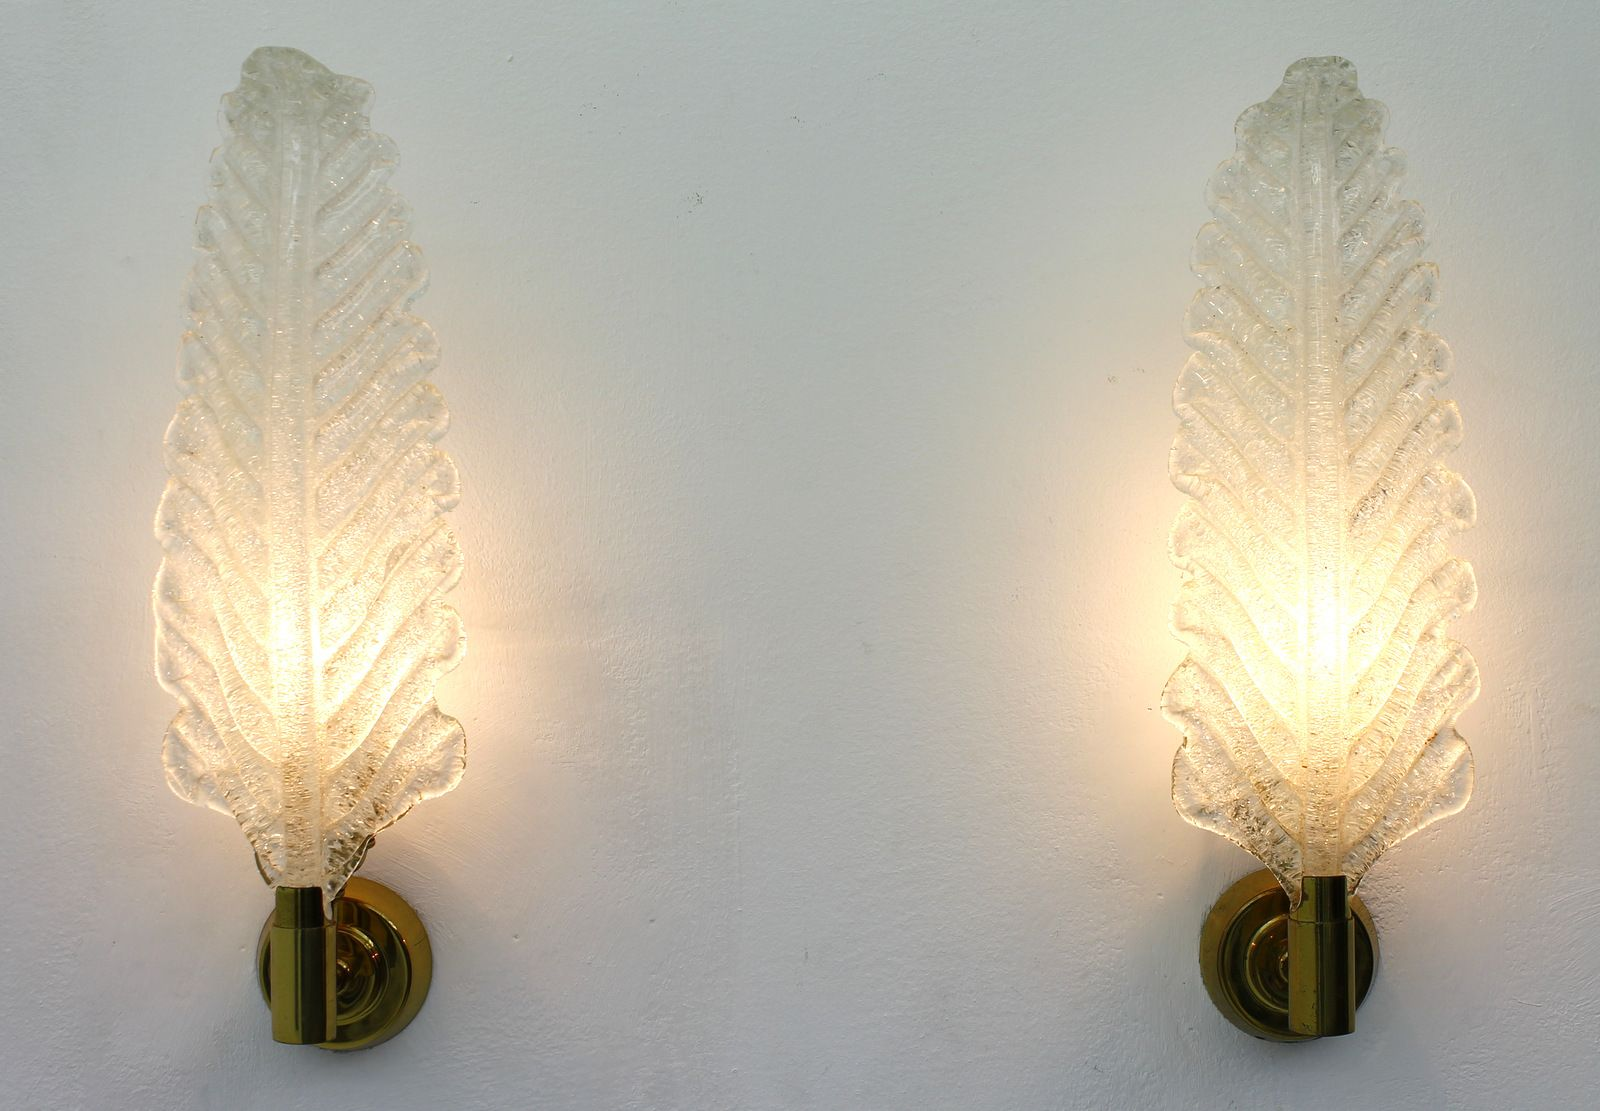 Vintage Glass Wall Sconces : Vintage Brass & Glass Wall Sconces by Barovier Toso, 1950s, Set of 2 for sale at Pamono